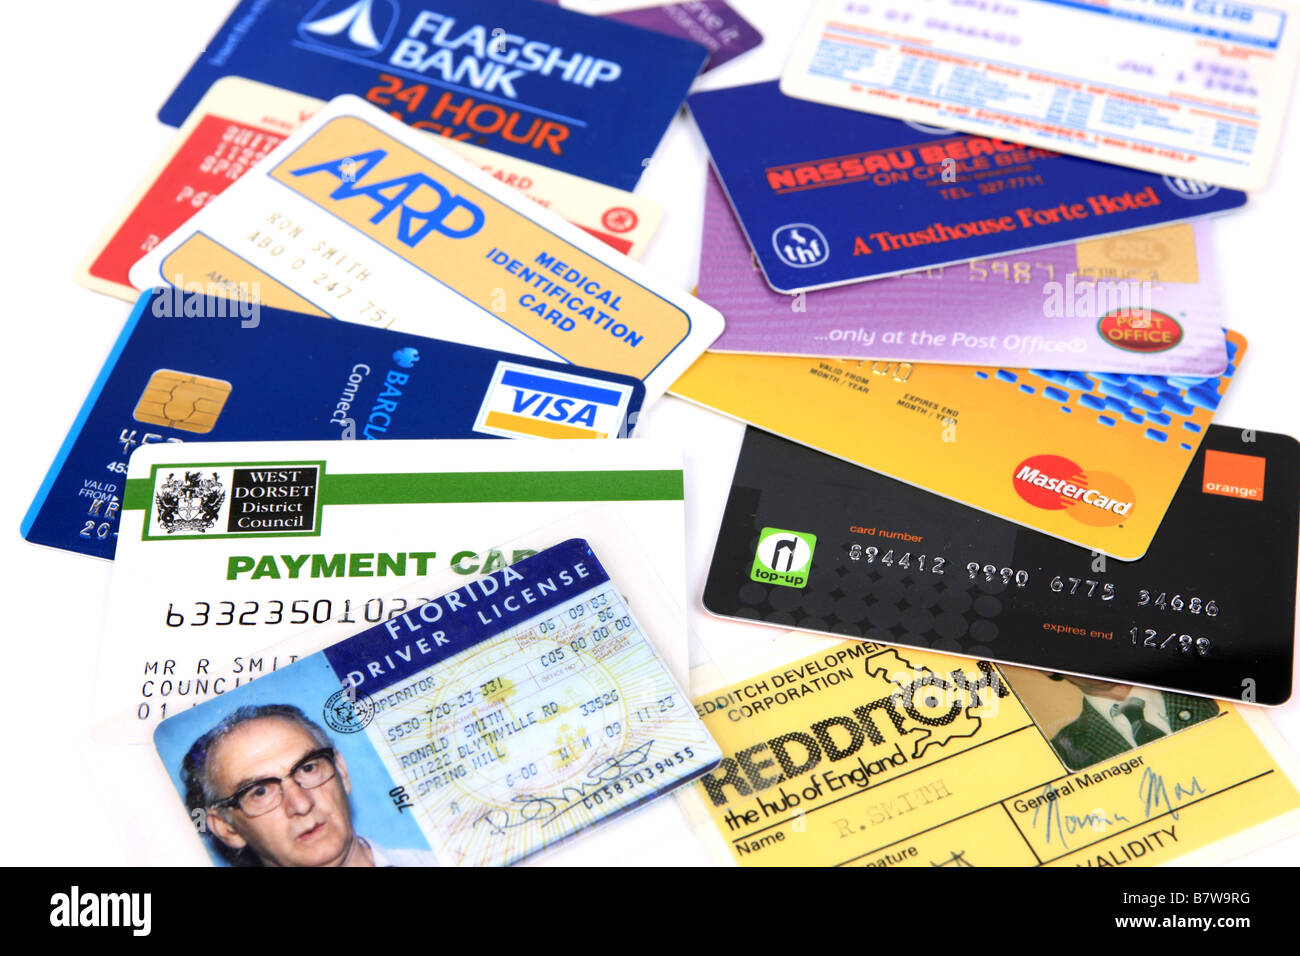 A selection of Credit cards Charge cards and ID cards - Stock Image